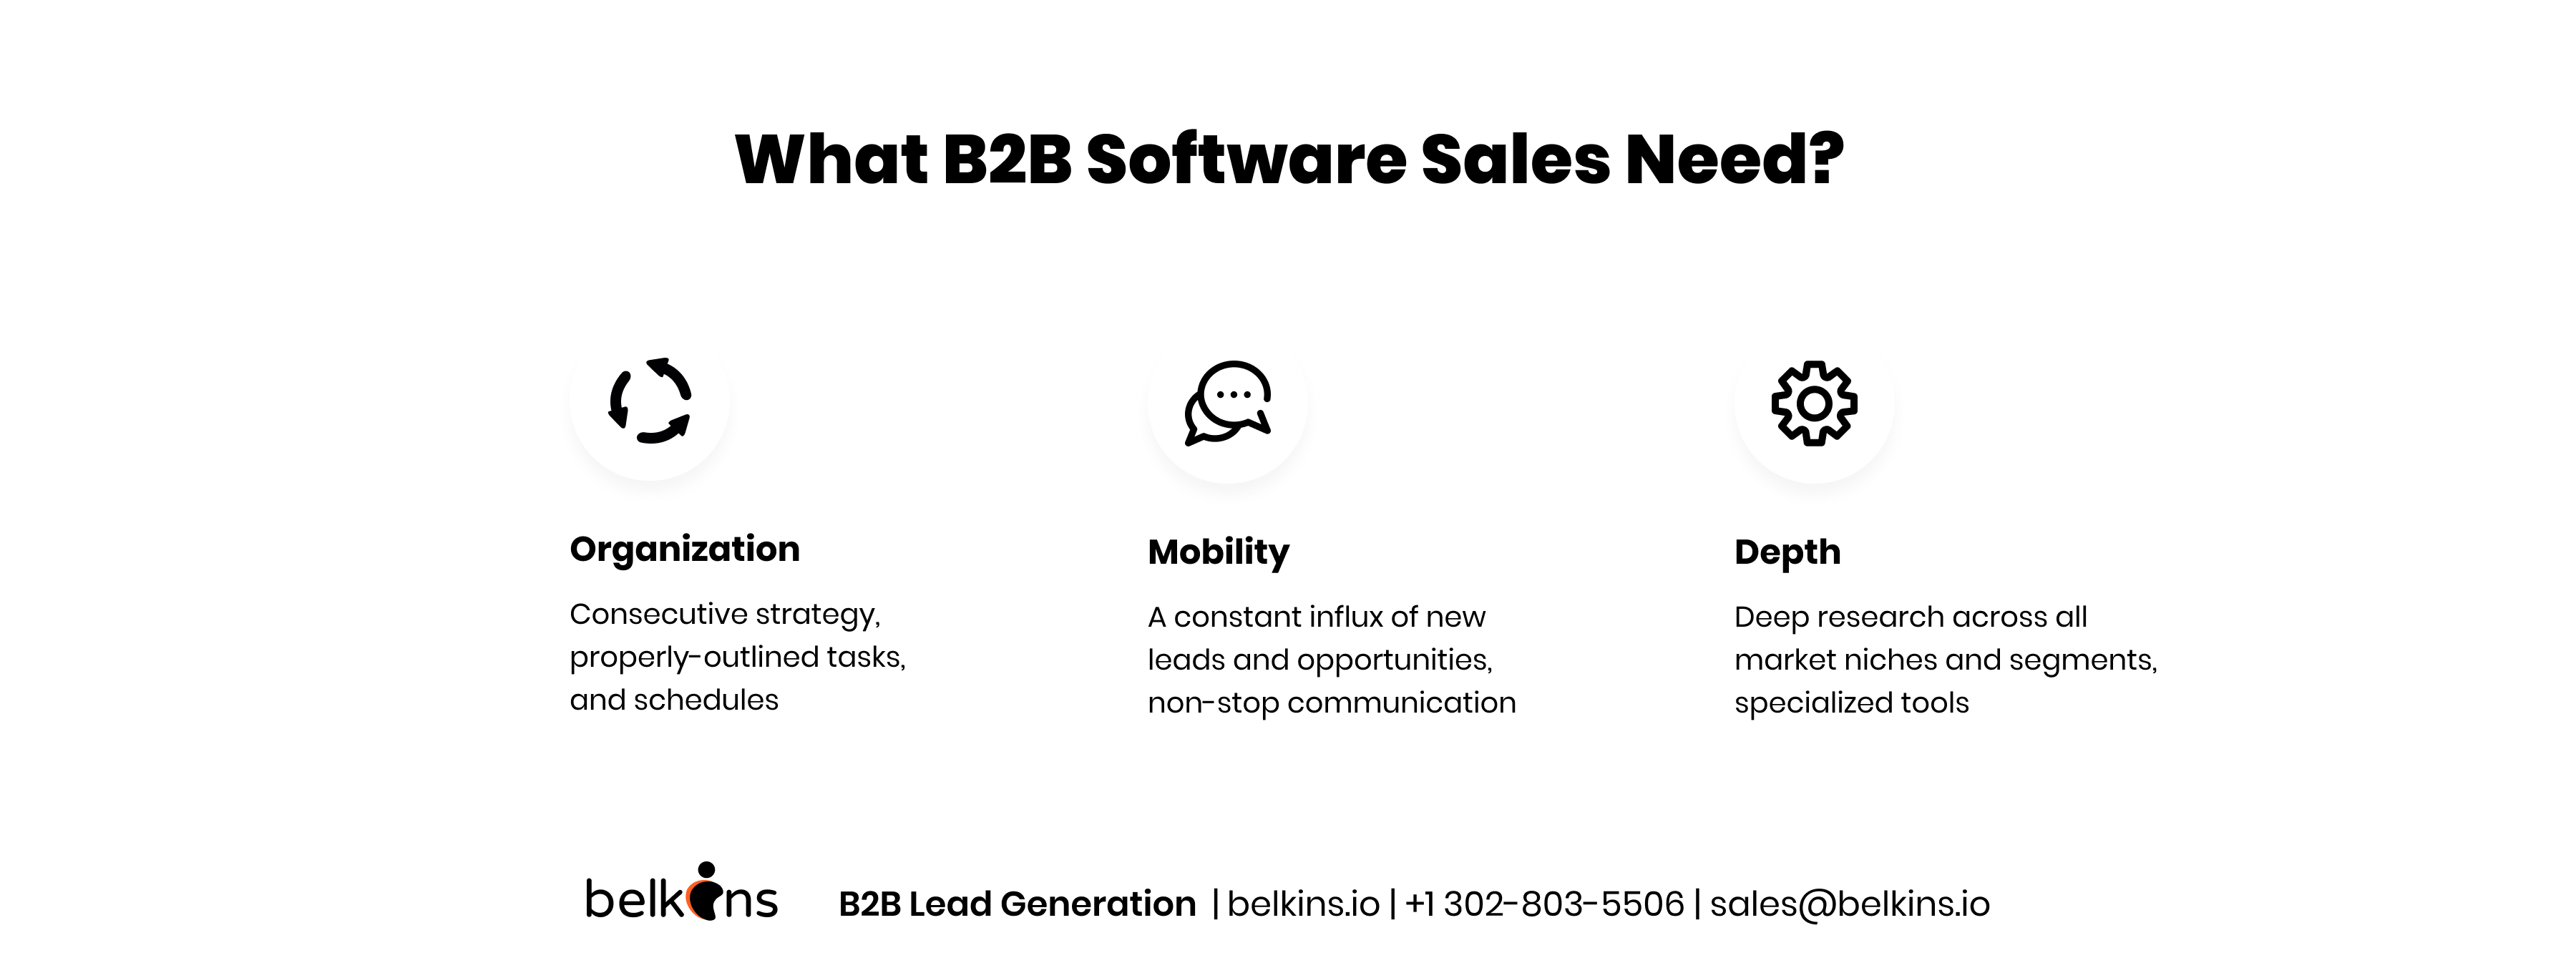 B2B-software-sales-need-Organization-Mobility-Depth